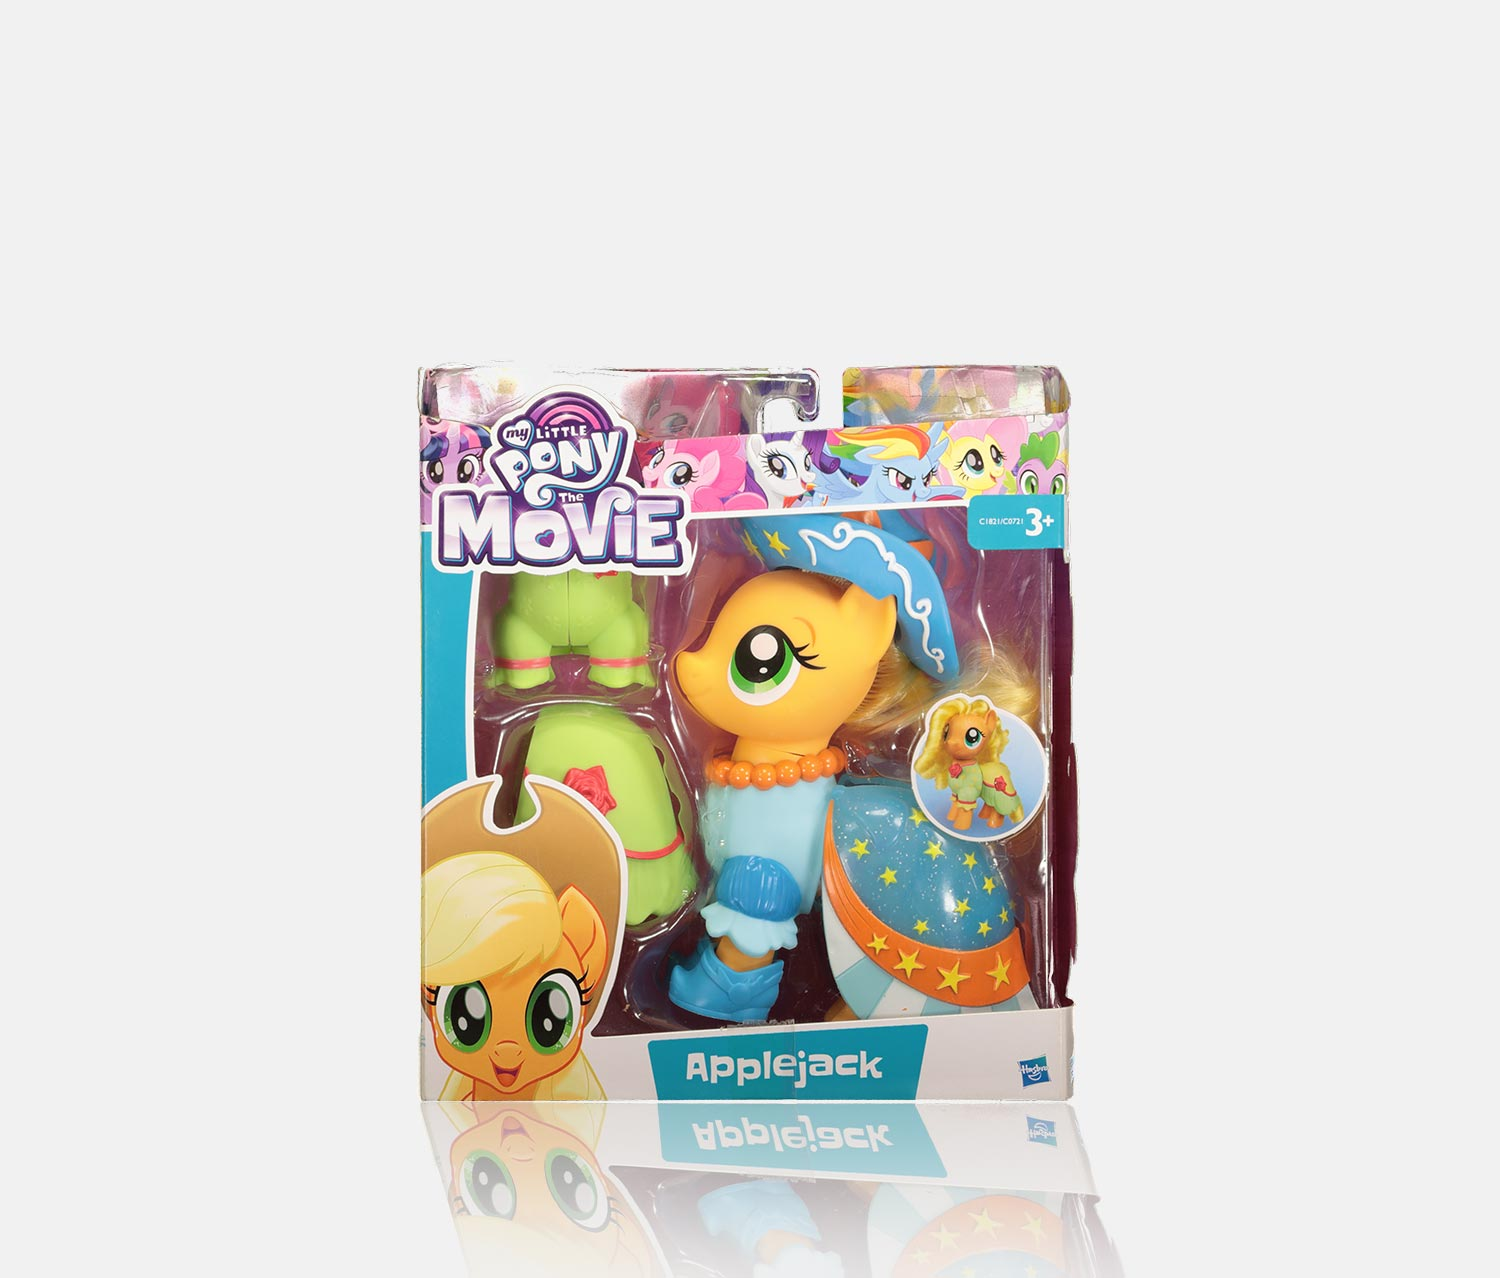 Shining Pony Game Set Applejack, Blue/Green Combo